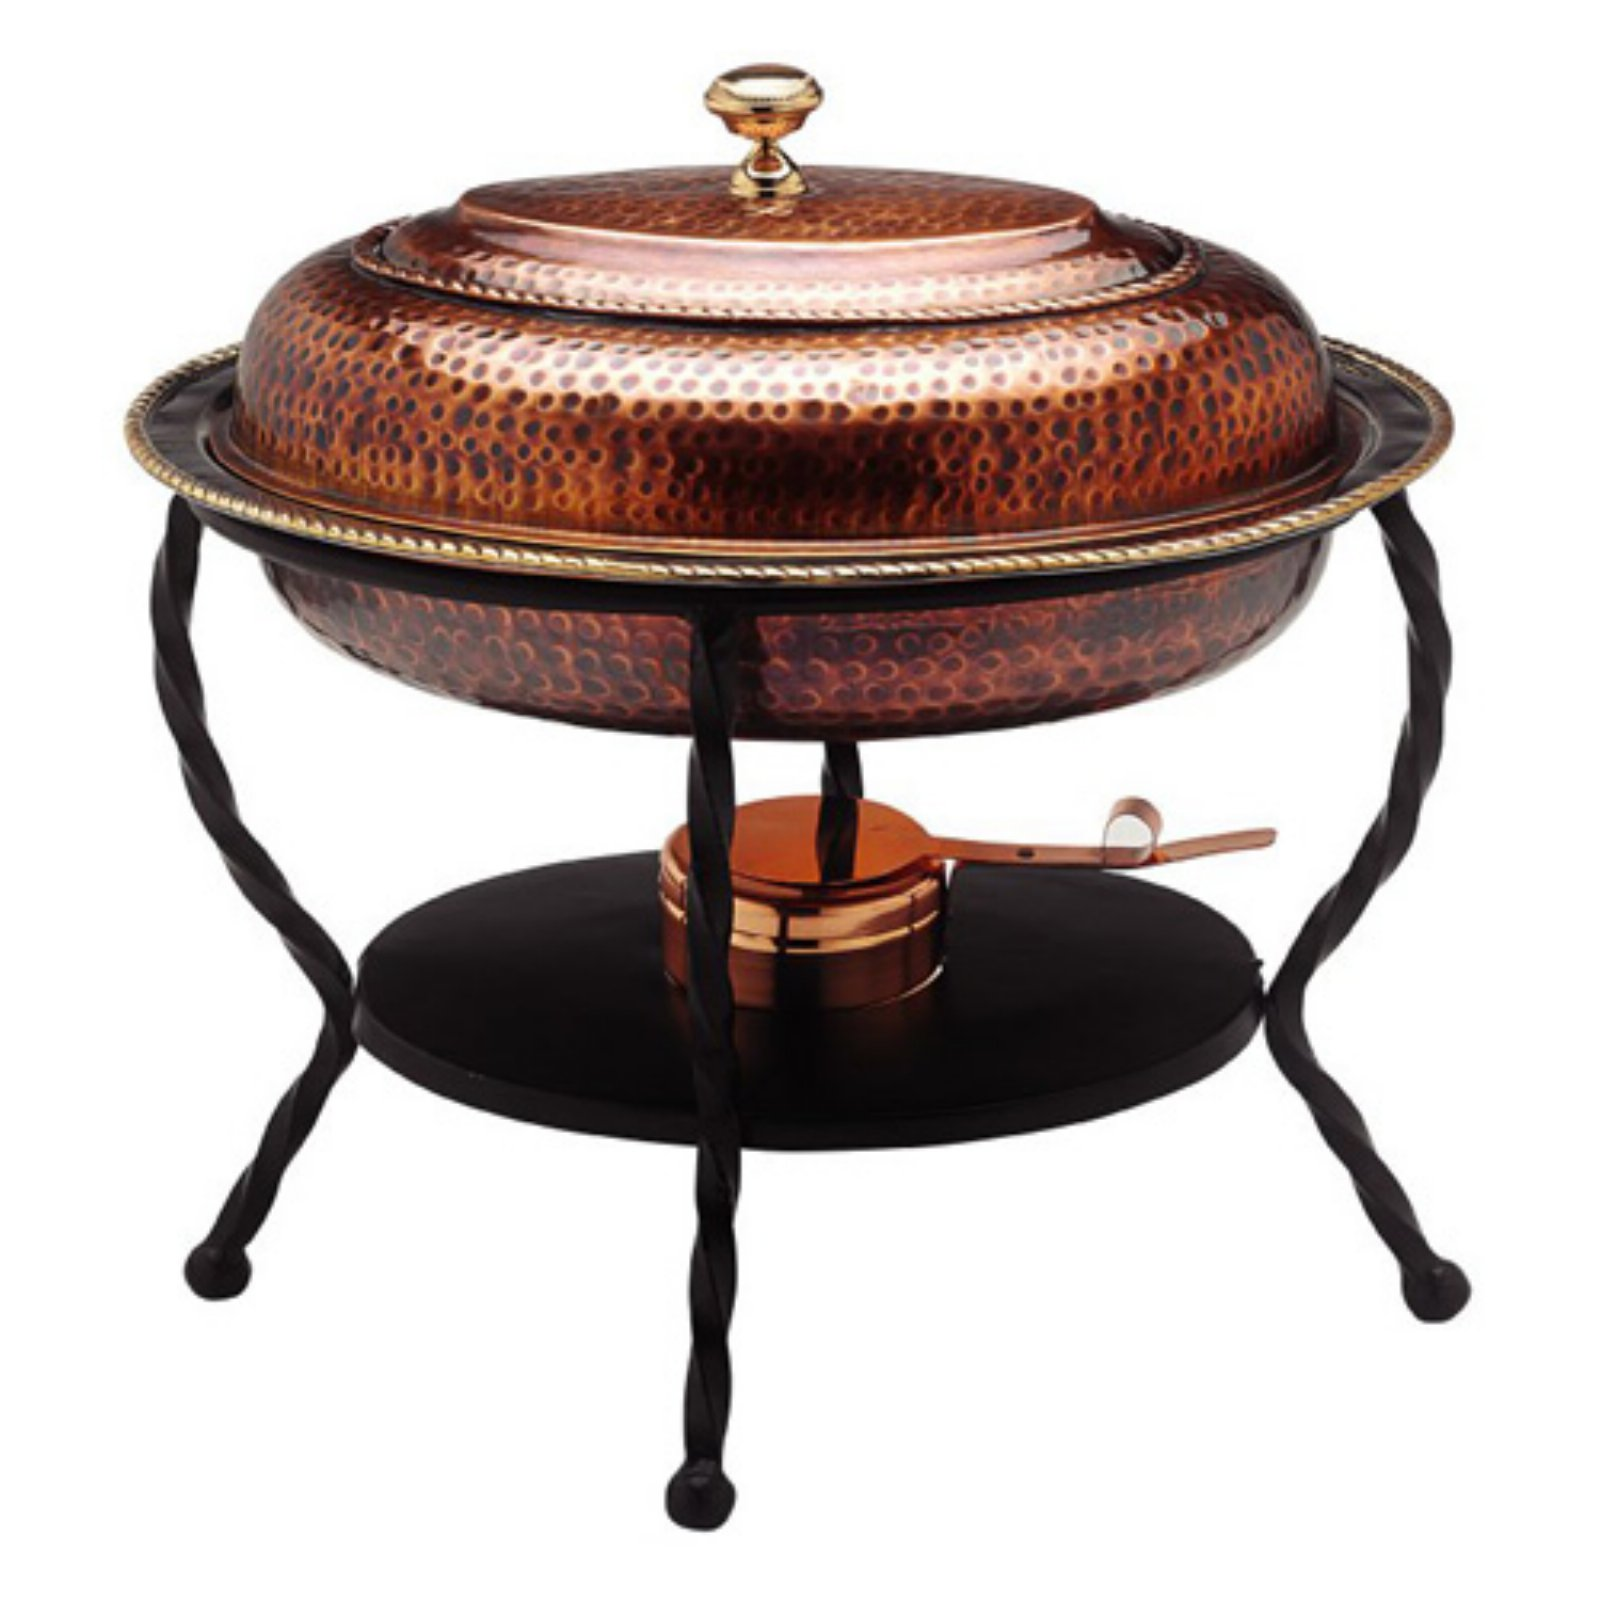 Old Dutch 841 Oval Antique Copper Chafing Dish